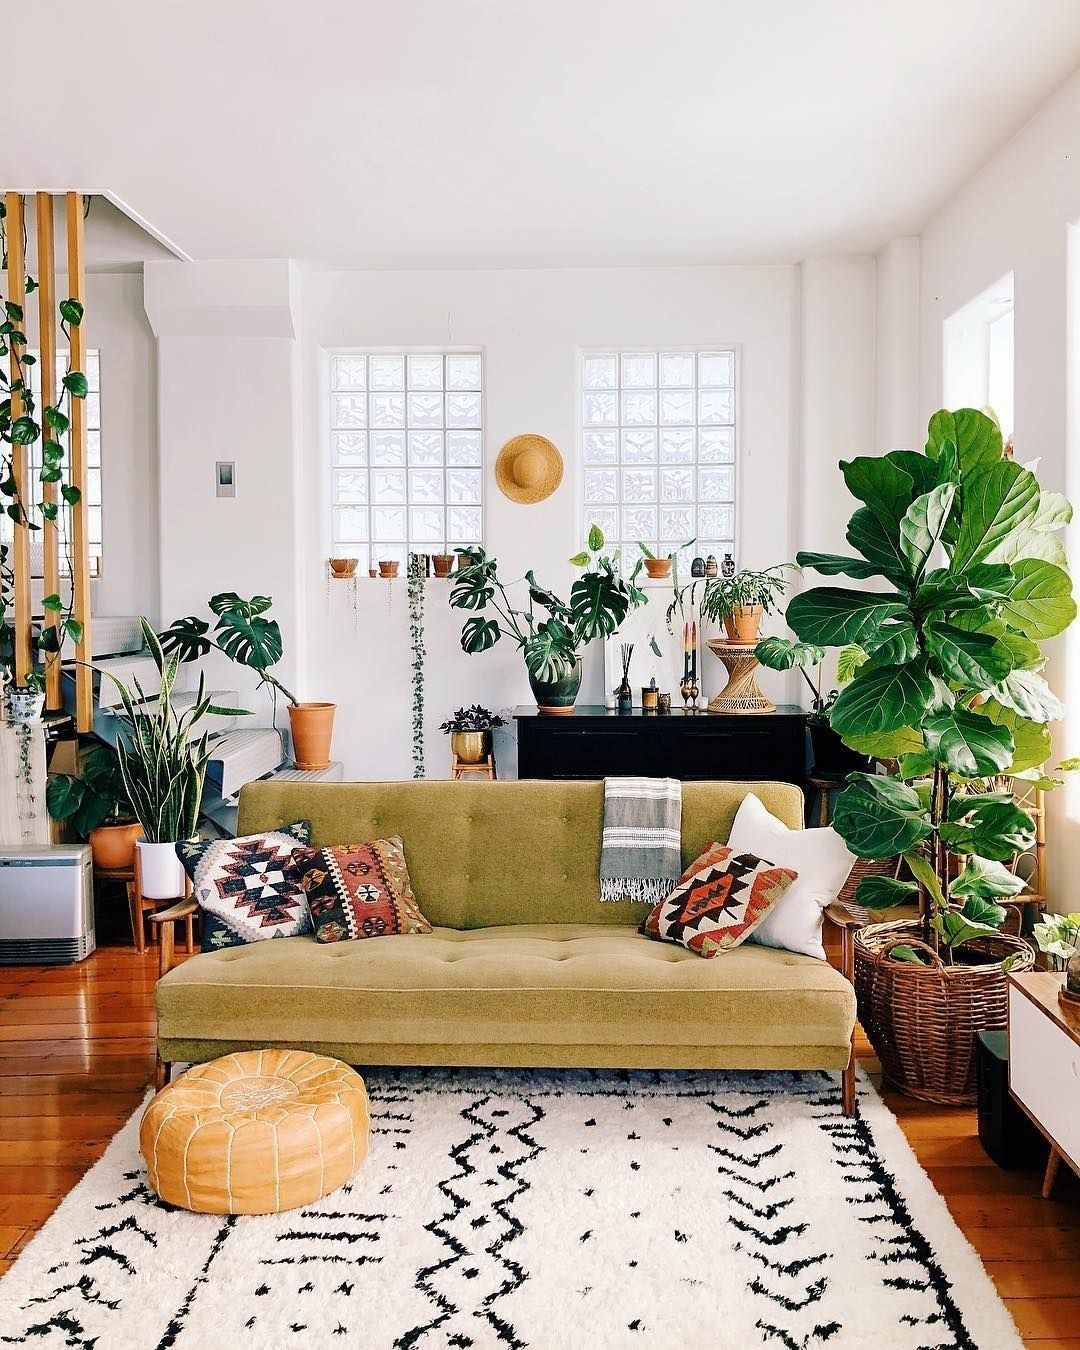 Inspiring Sitting Room Decor Ideas For Inviting And Cozy: 50 ASTONISHING WALL PLANTS DECOR FOR COZY LIVING ROOM